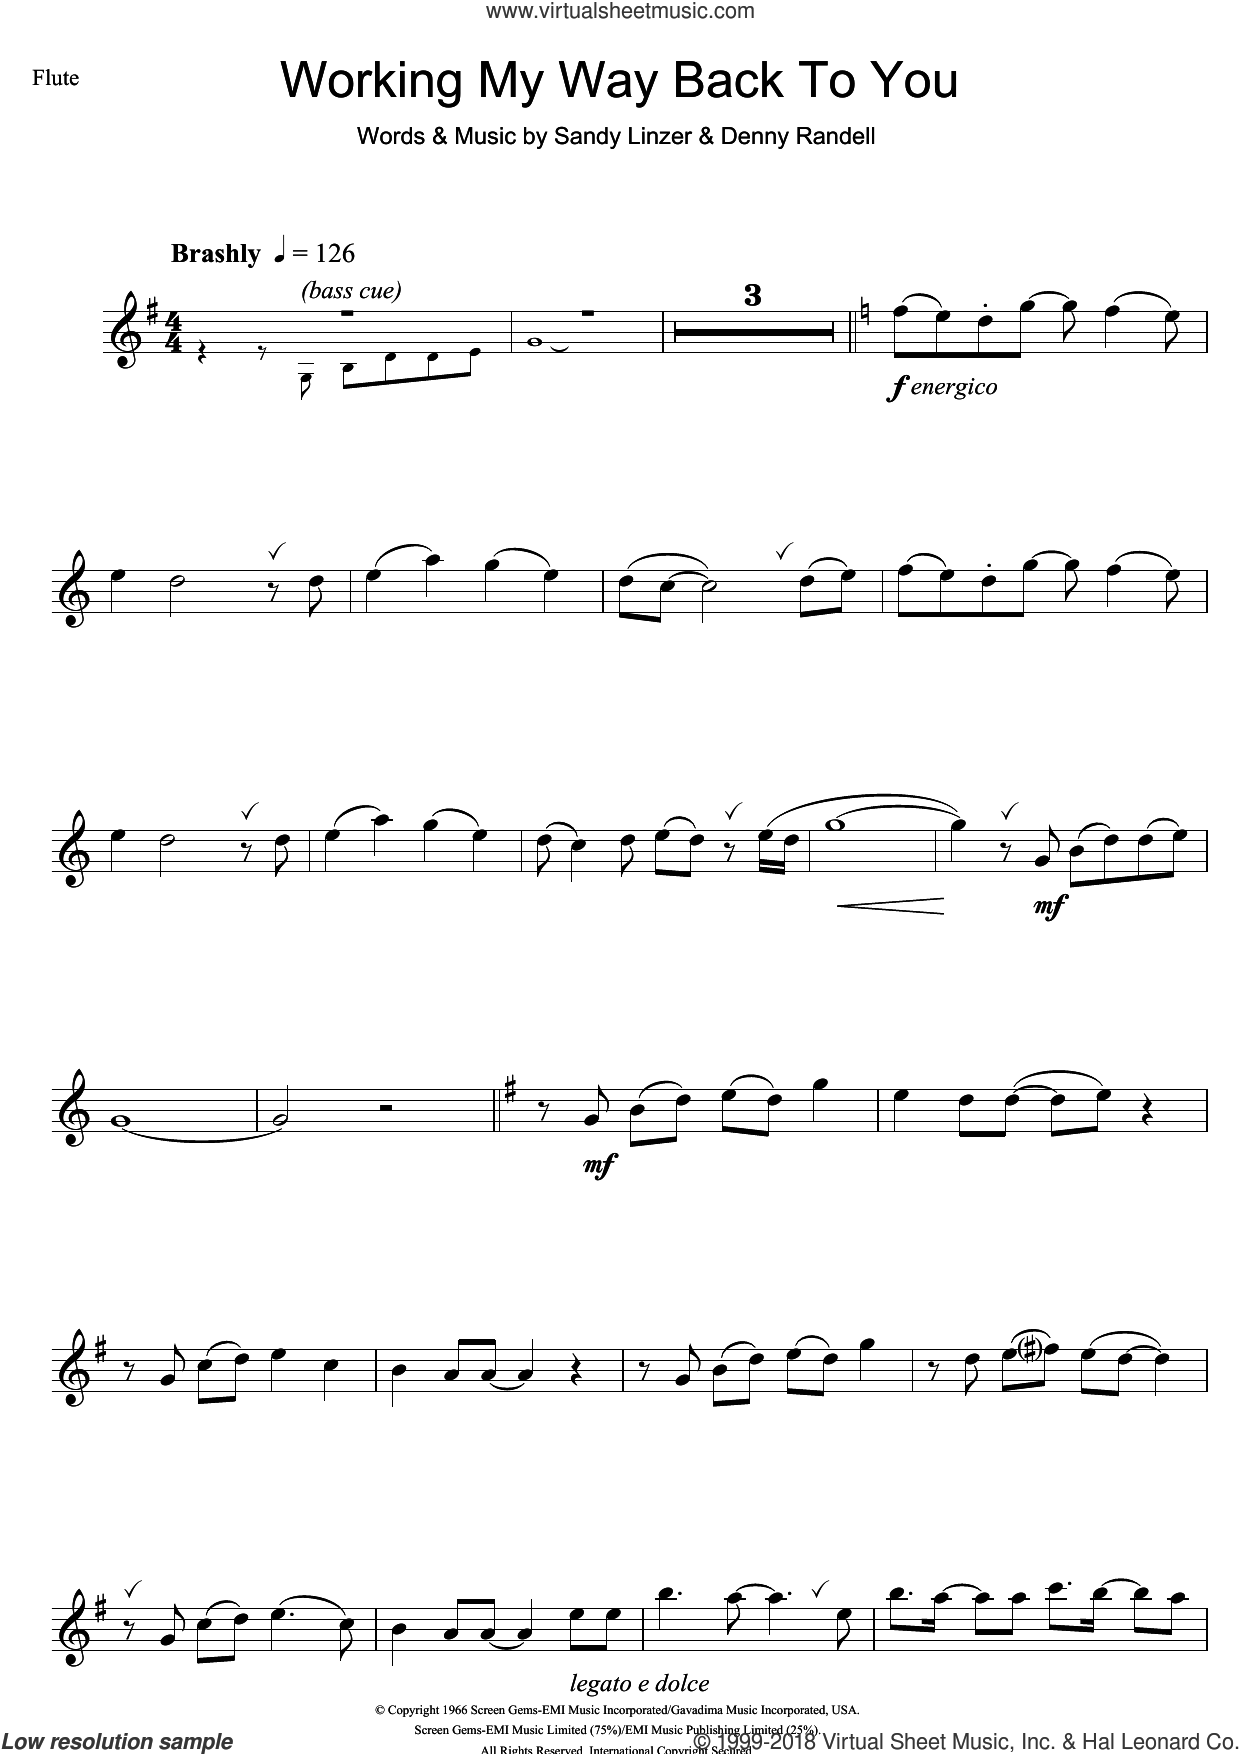 Working My Way Back To You sheet music for flute solo by The Four Seasons, Denny Randell and Sandy Linzer, intermediate skill level